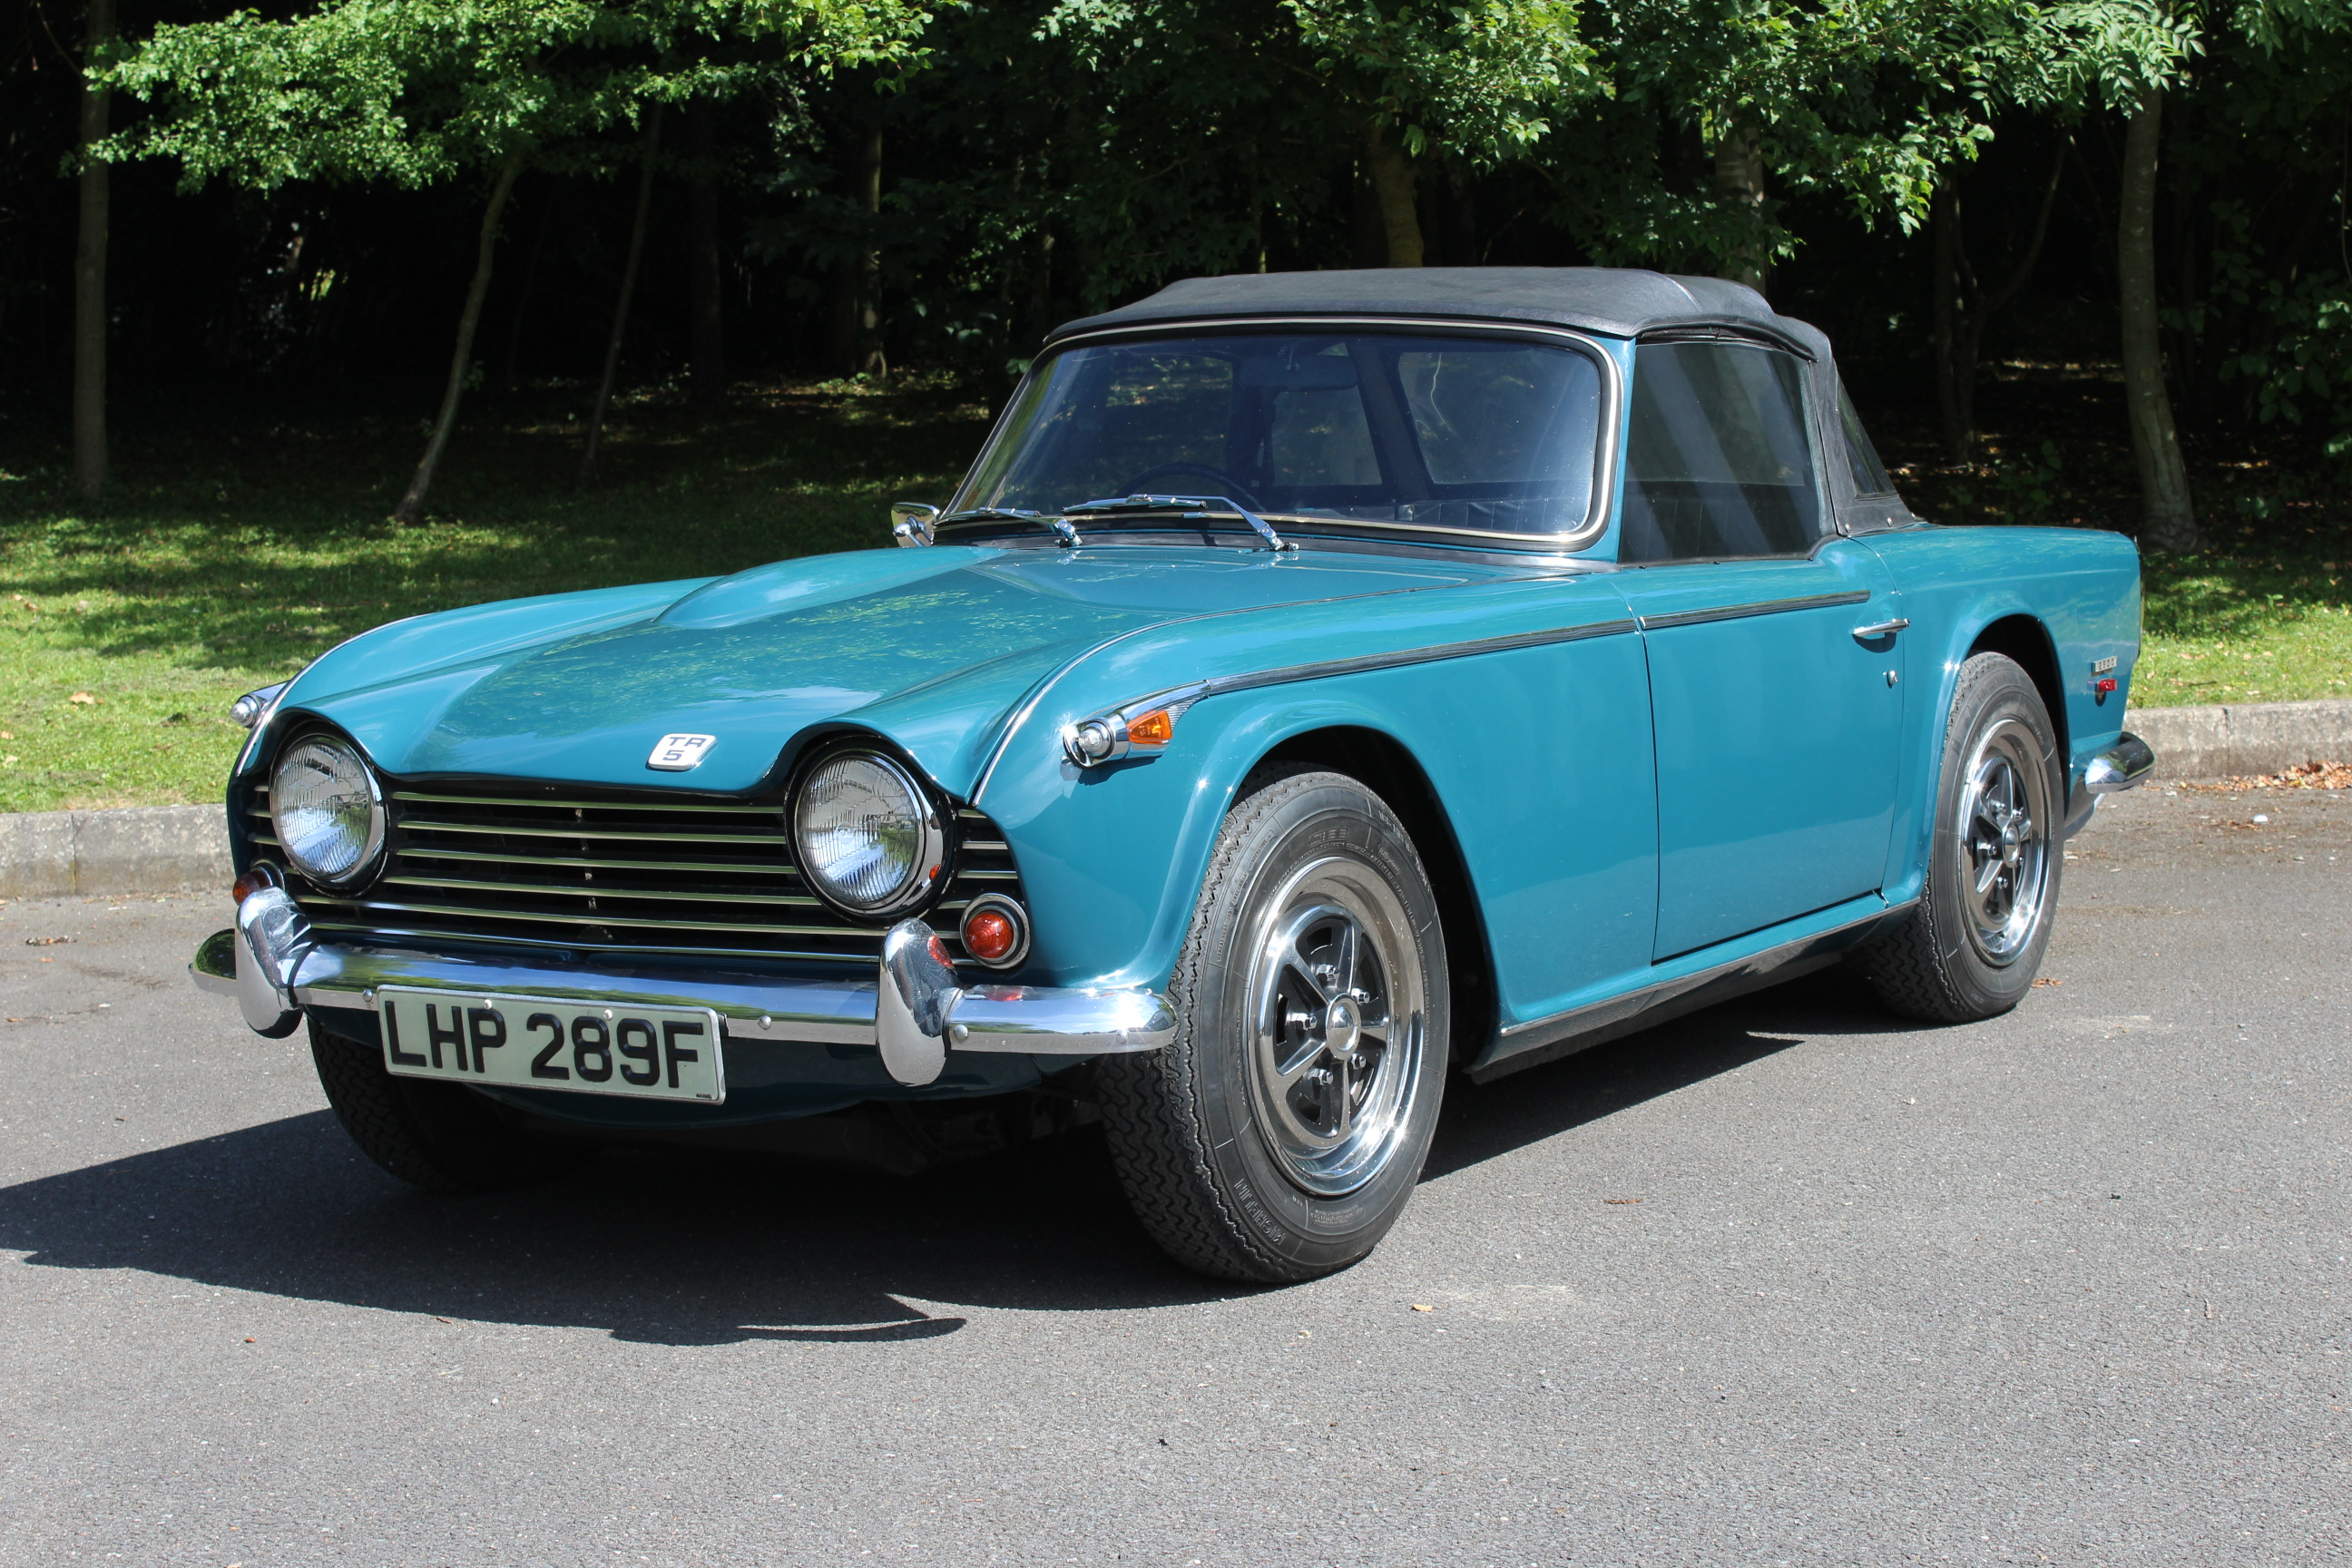 1967 Triumph Tr5 Cp2 The Very First Production Tr5